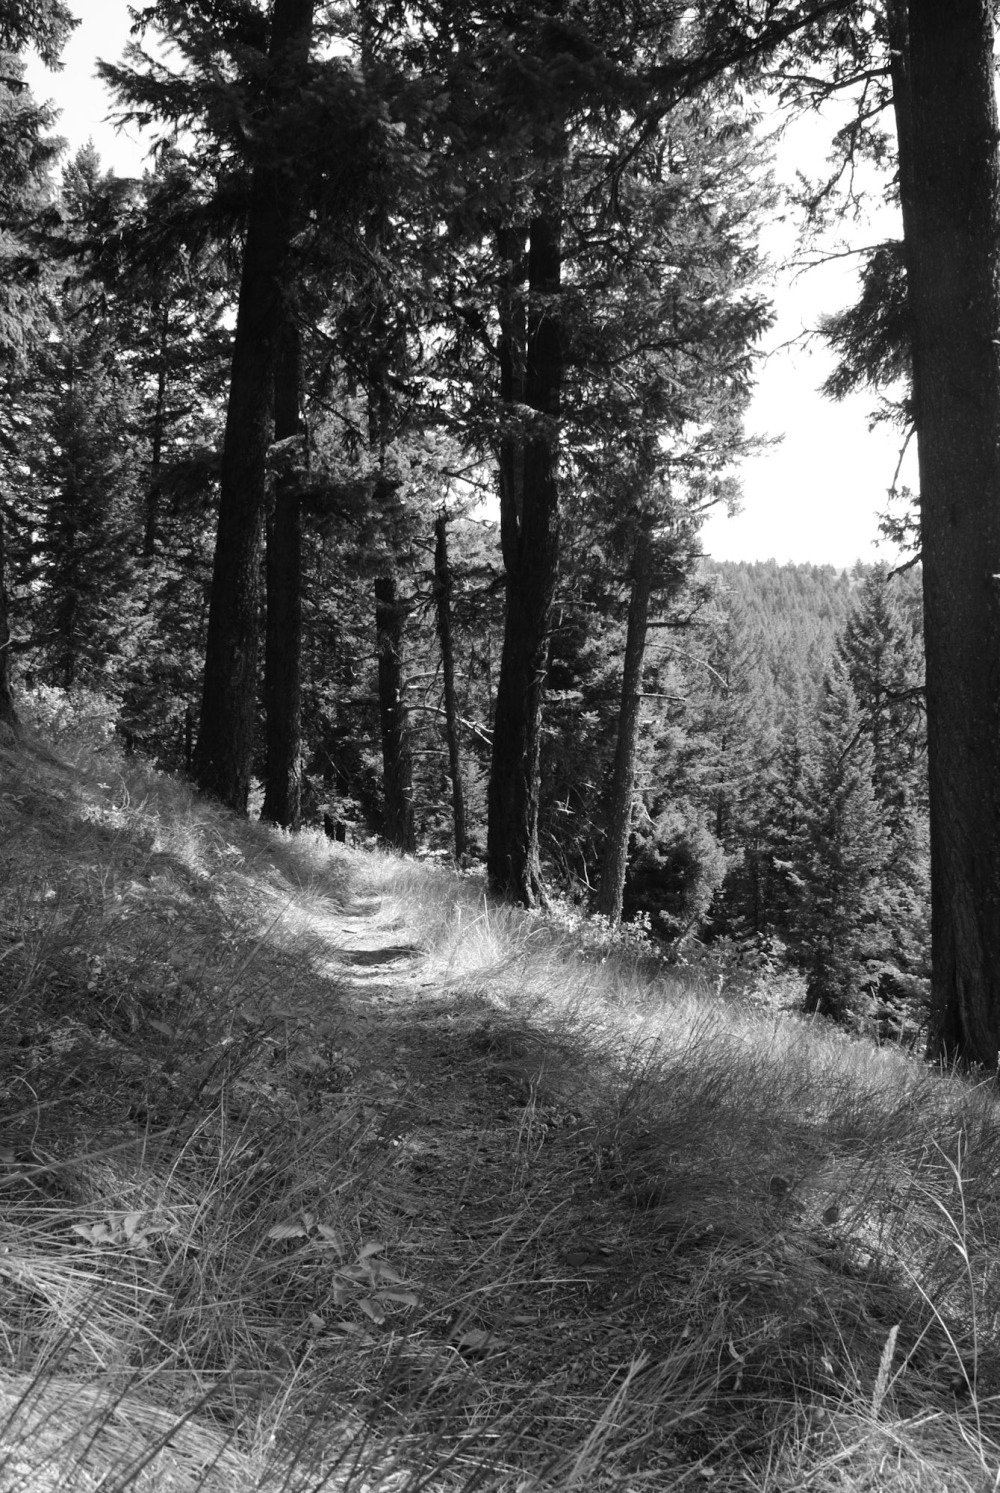 A mountainside trail in black and white